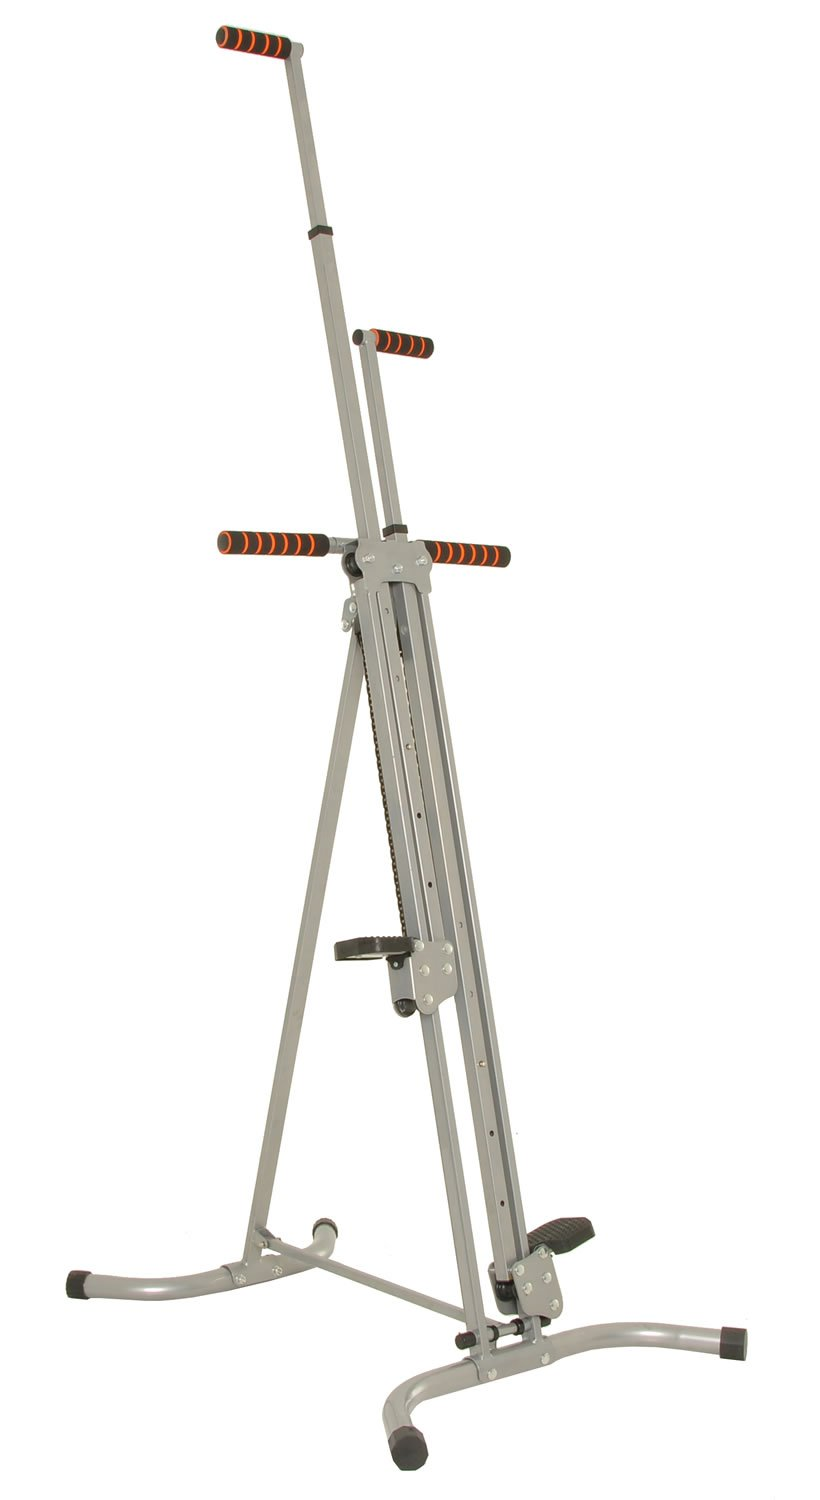 Conquer Vertical Climber Fitness Climbing Machine by Conquer (Image #2)